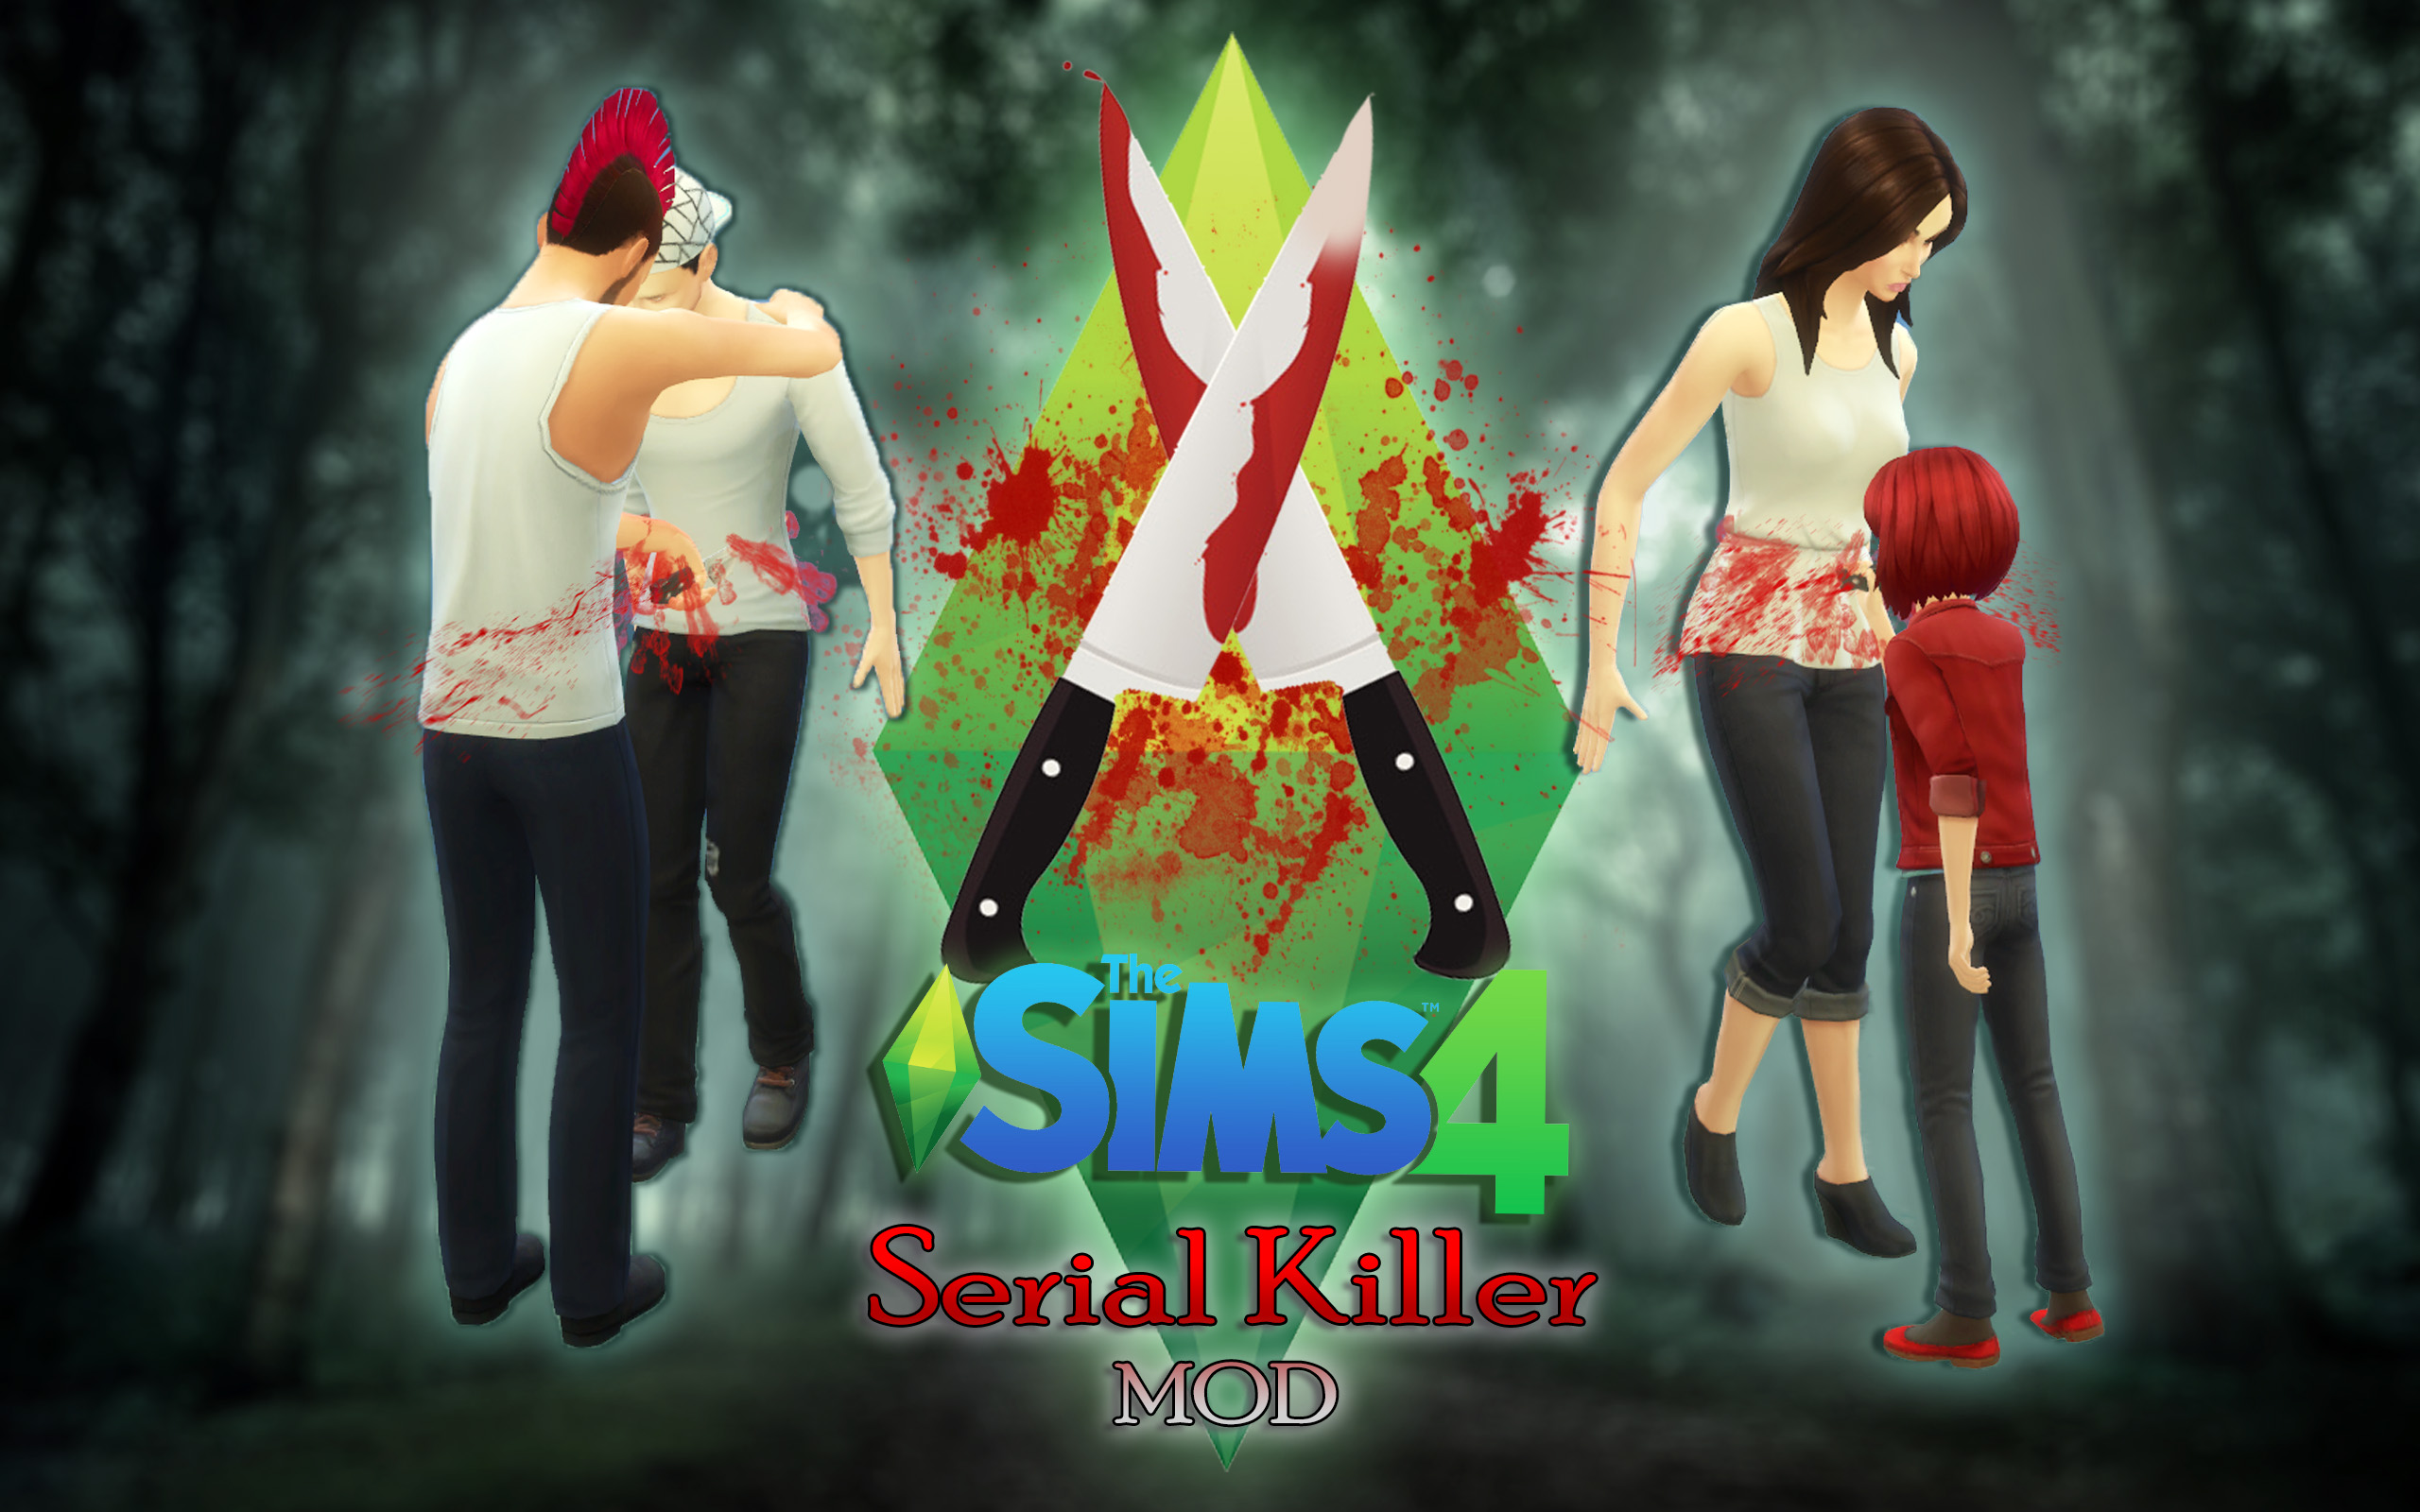 The Sims 4 Serial Killer MOD